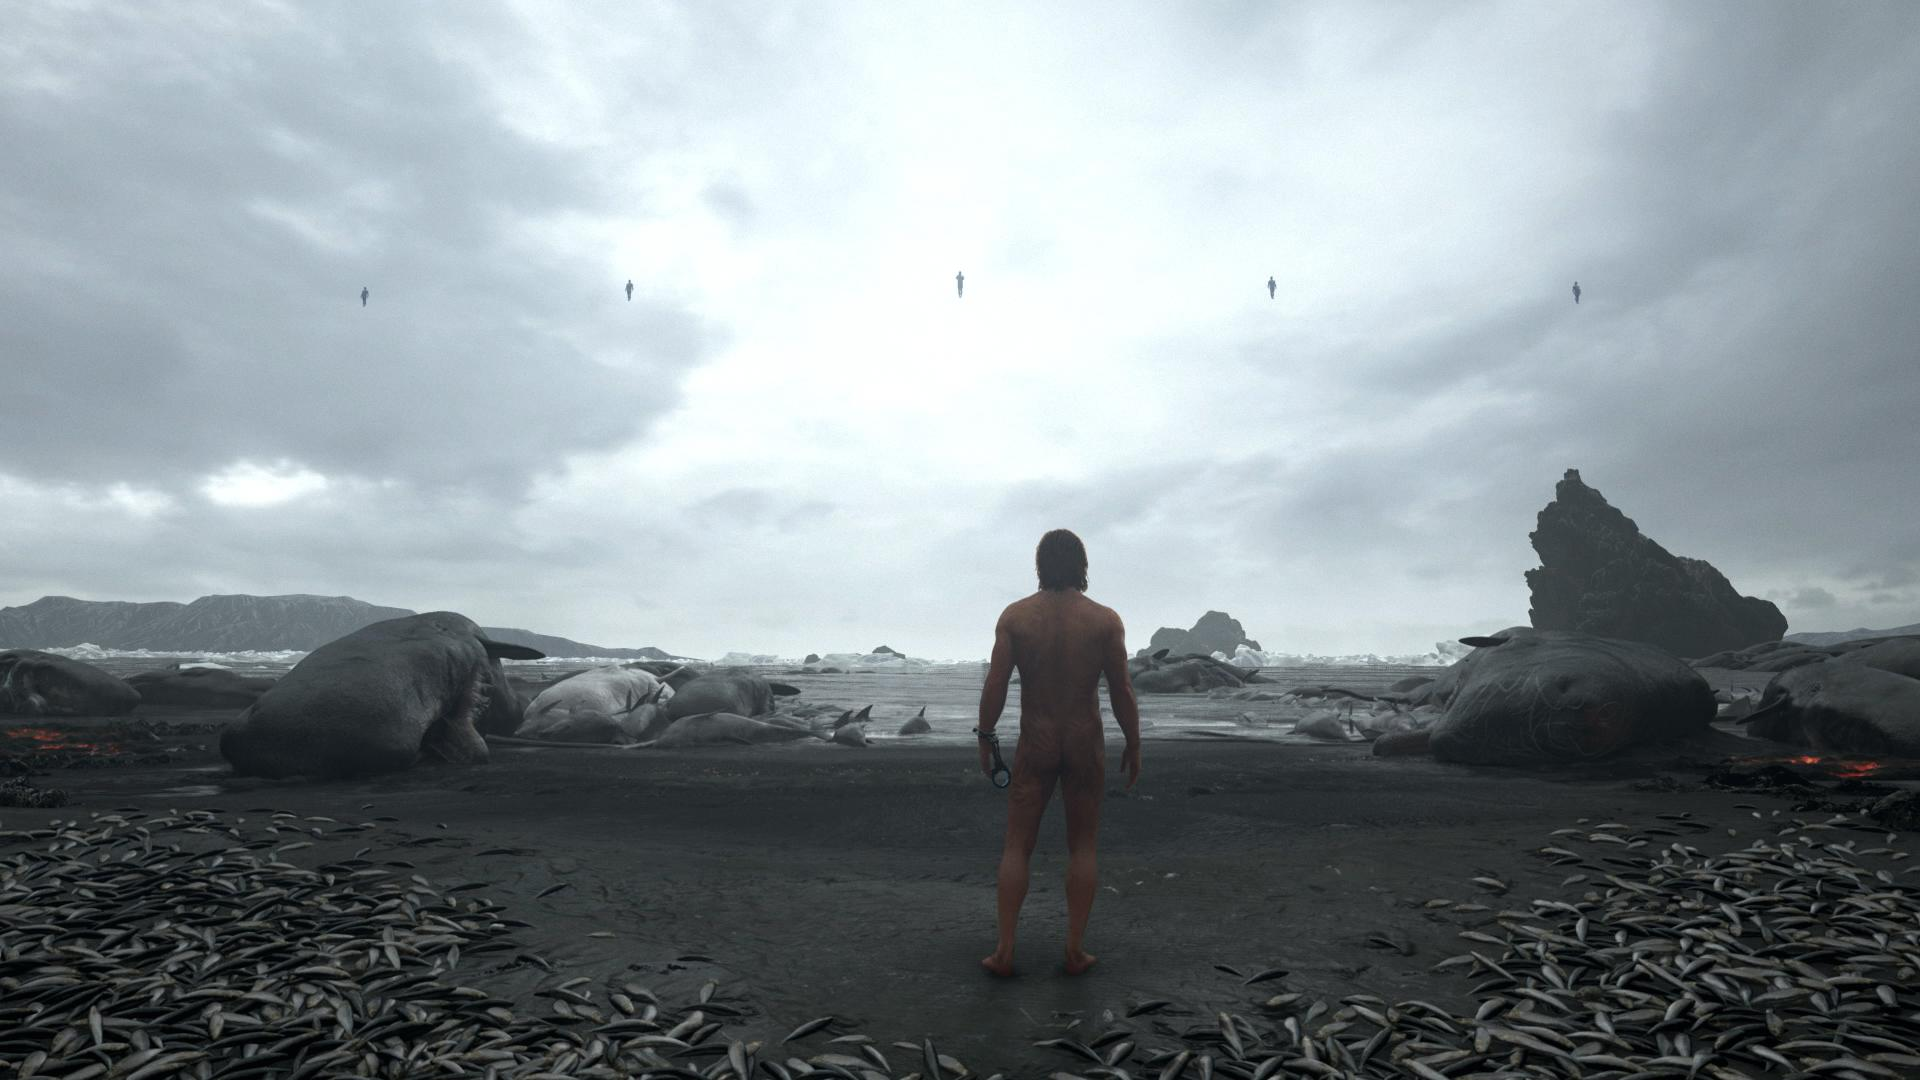 Little is known about Hideo Kojima's next game - but expect it to be fantastic